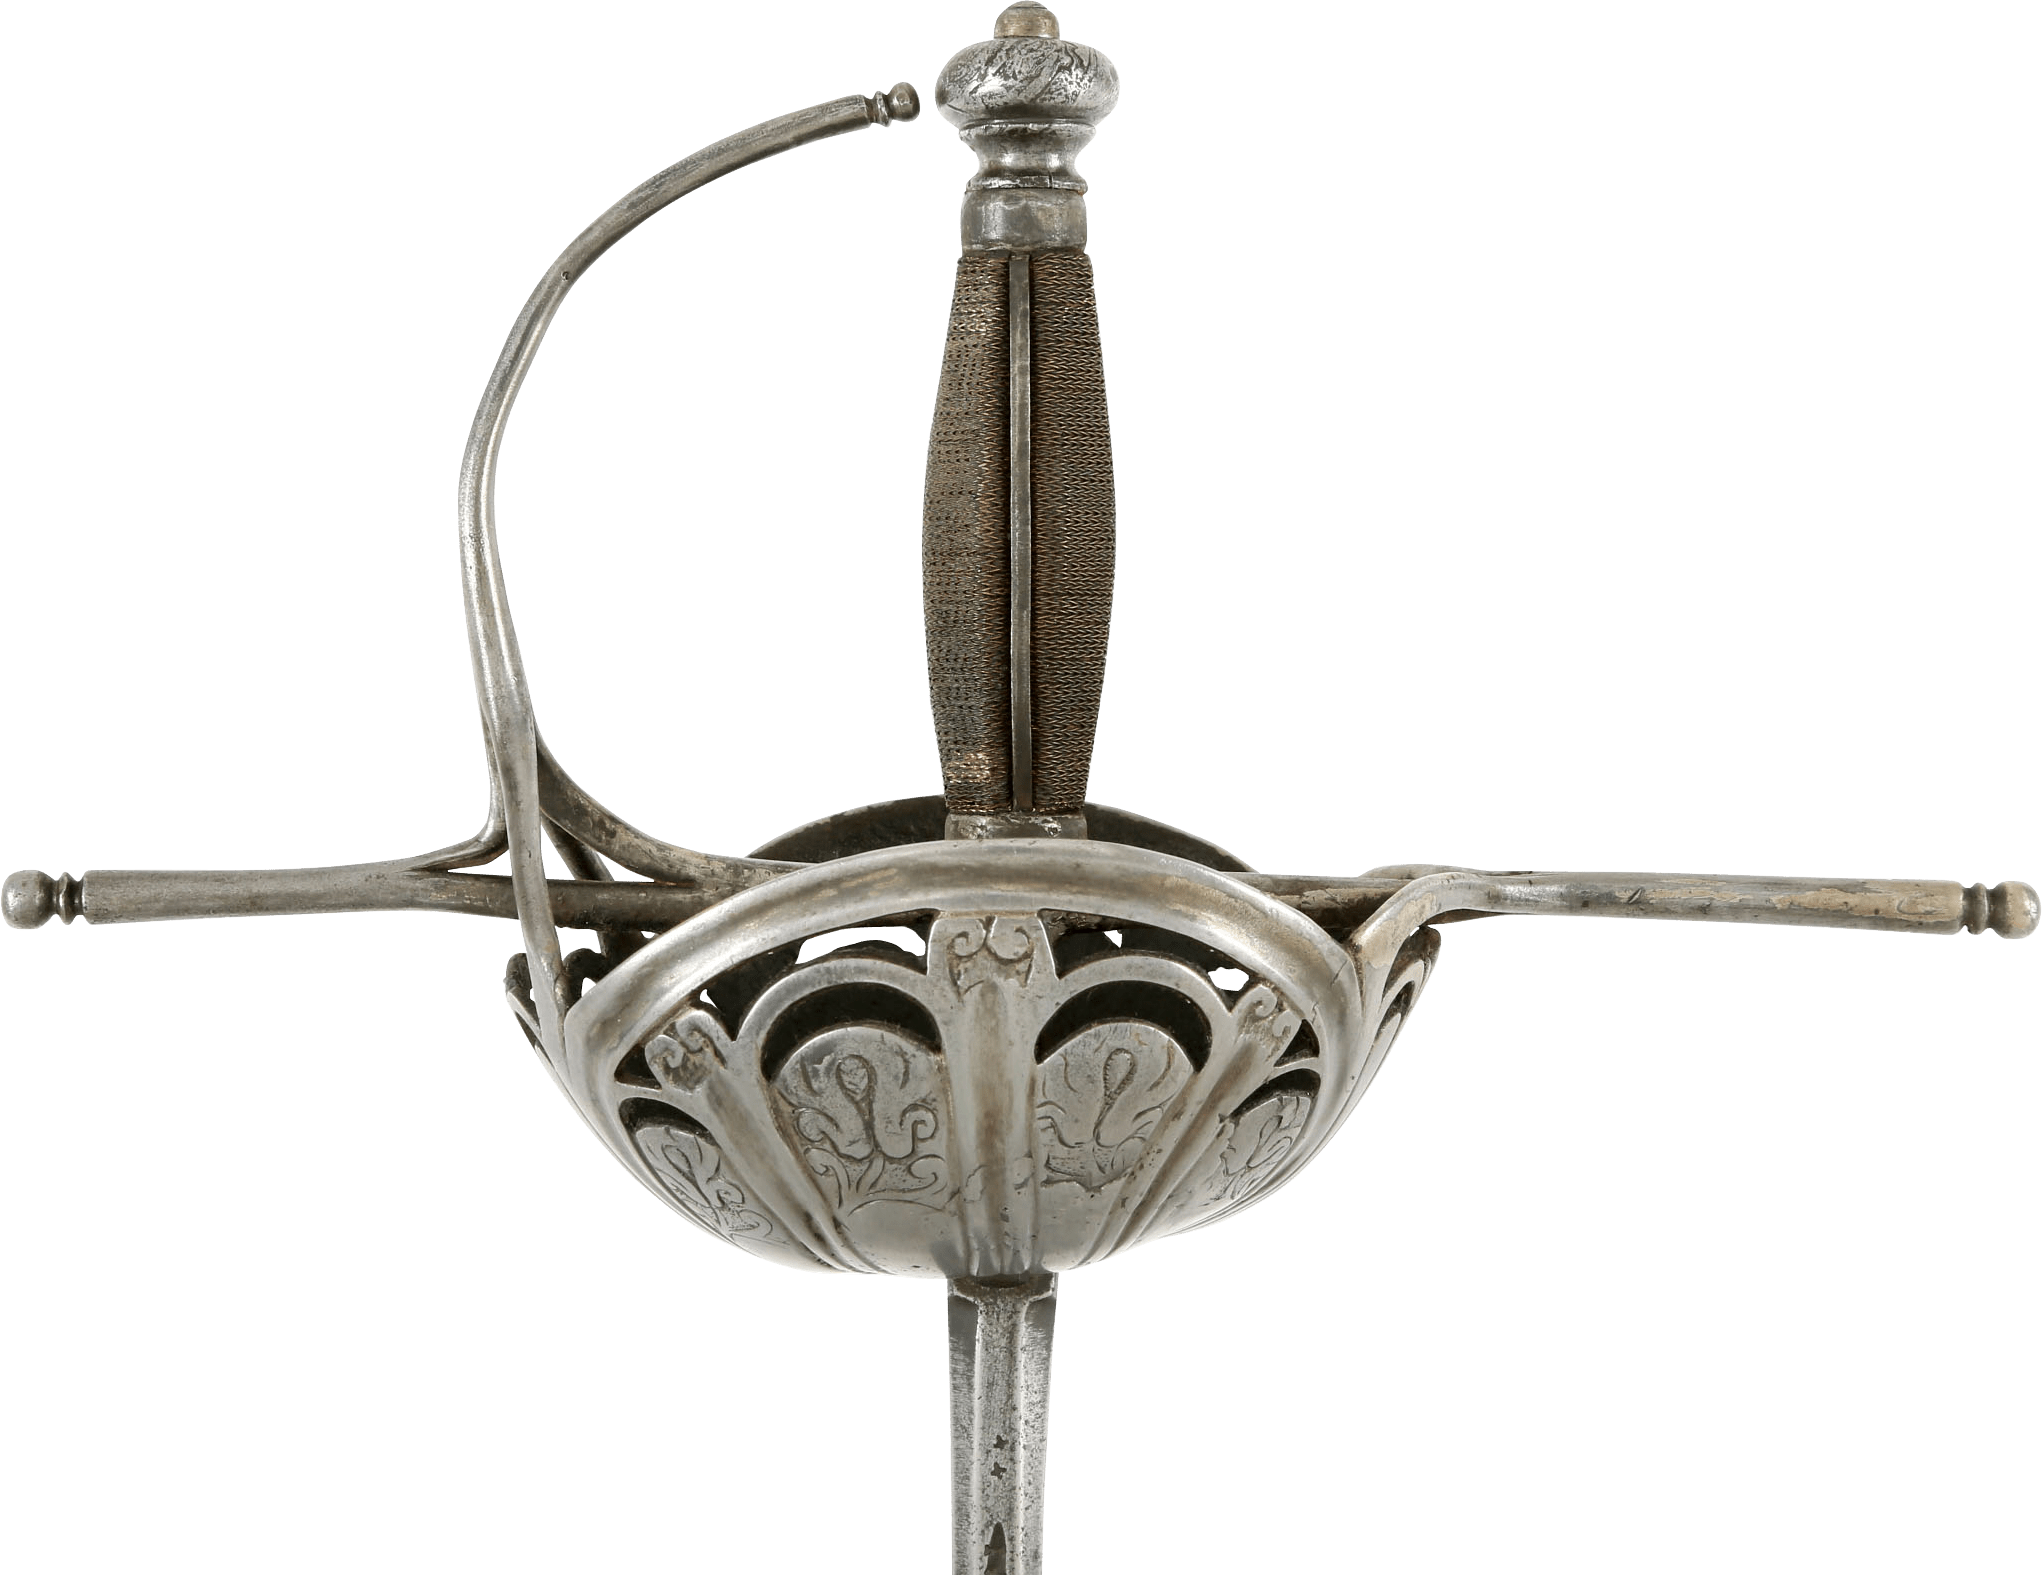 Spanish Cup Hilted Rapier C.1650 - Product